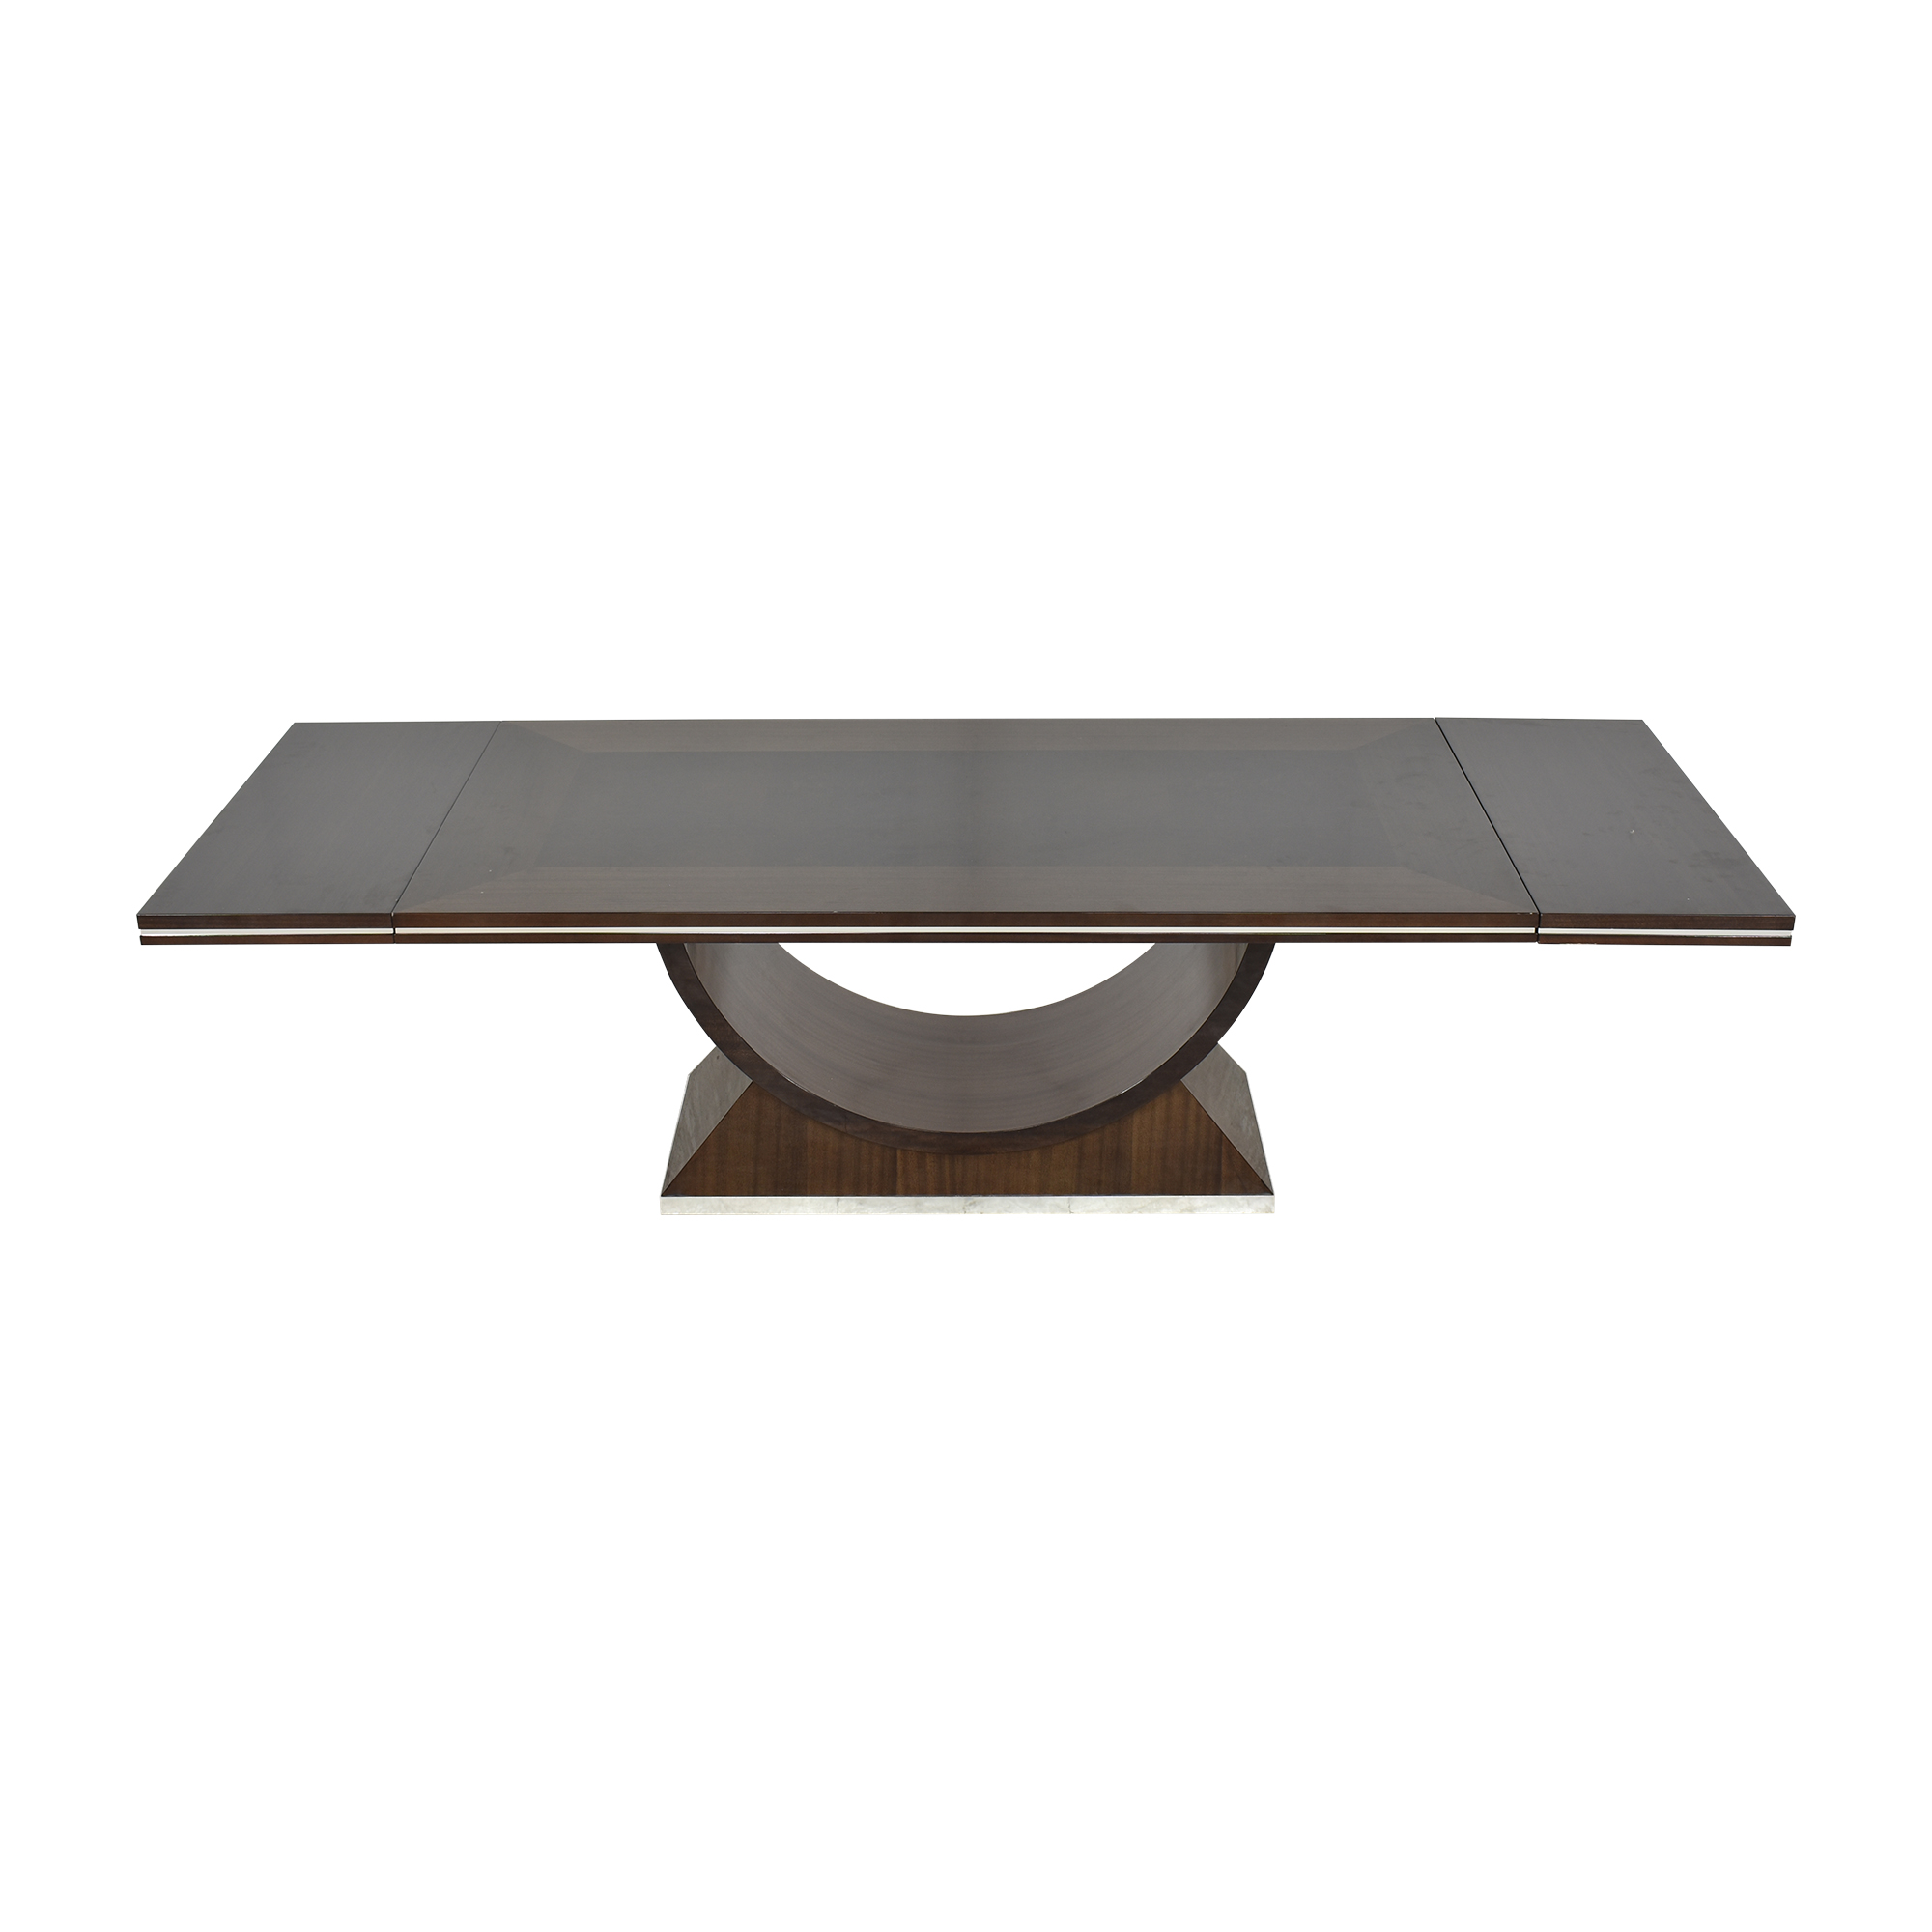 Pietro Costantini Contemporary Extendable Dining Table sale